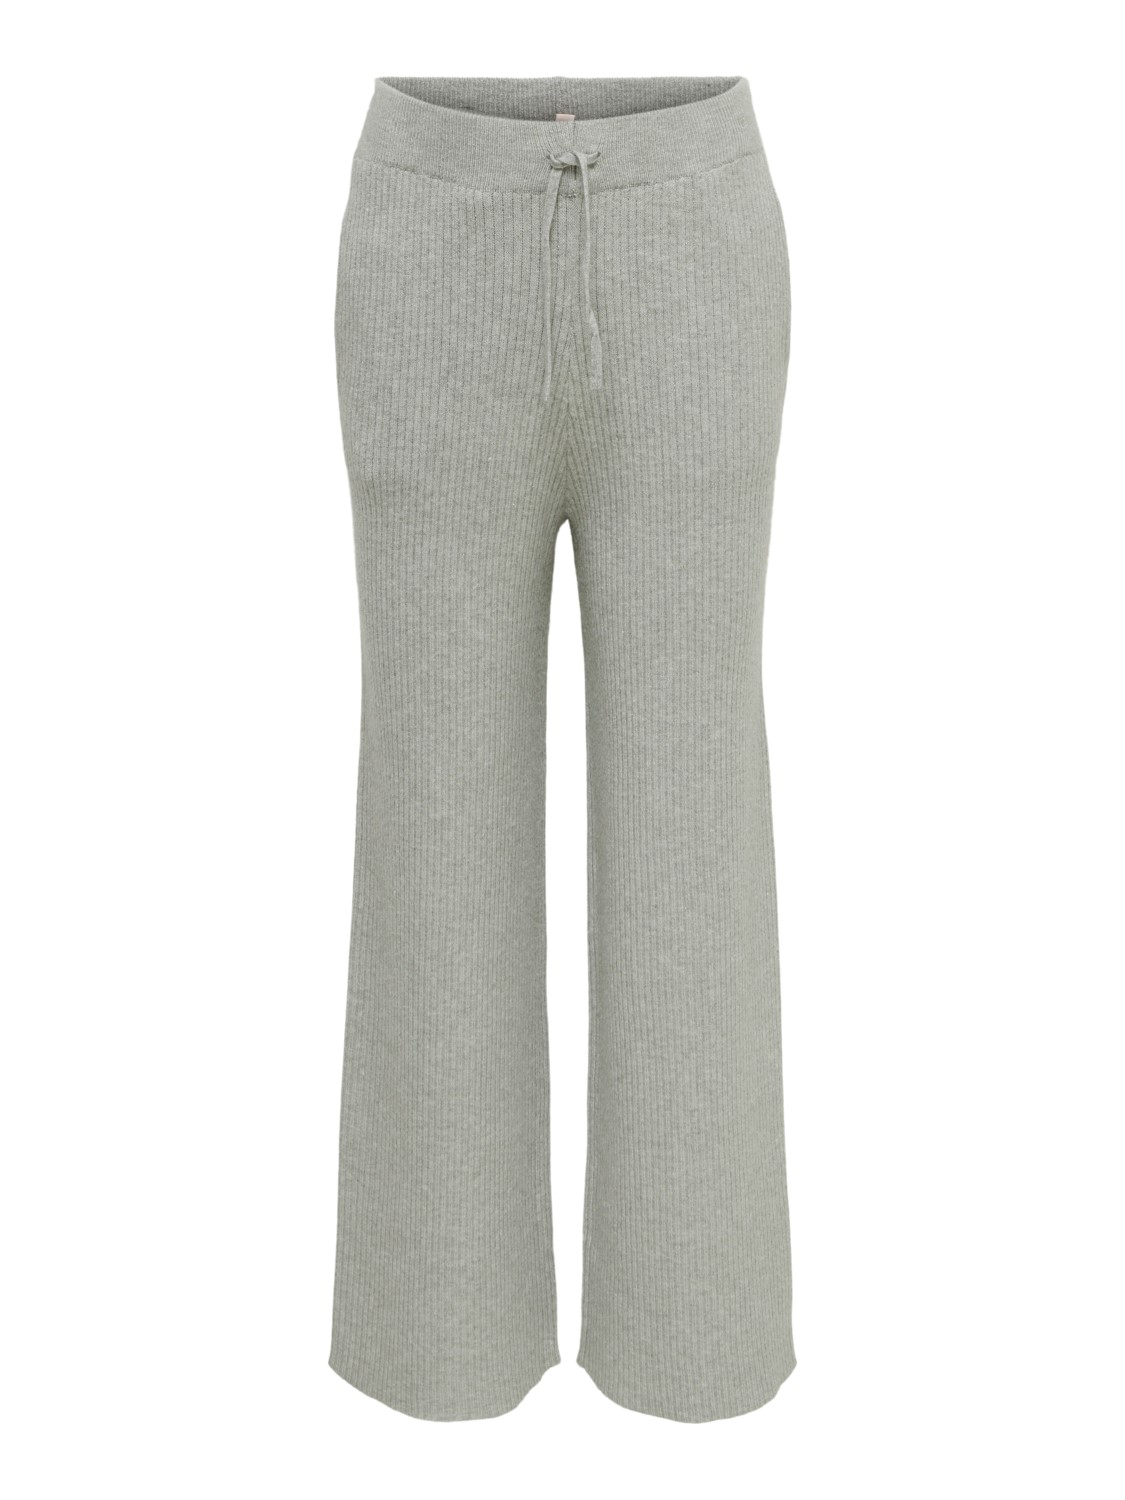 Kids Only Florette pant